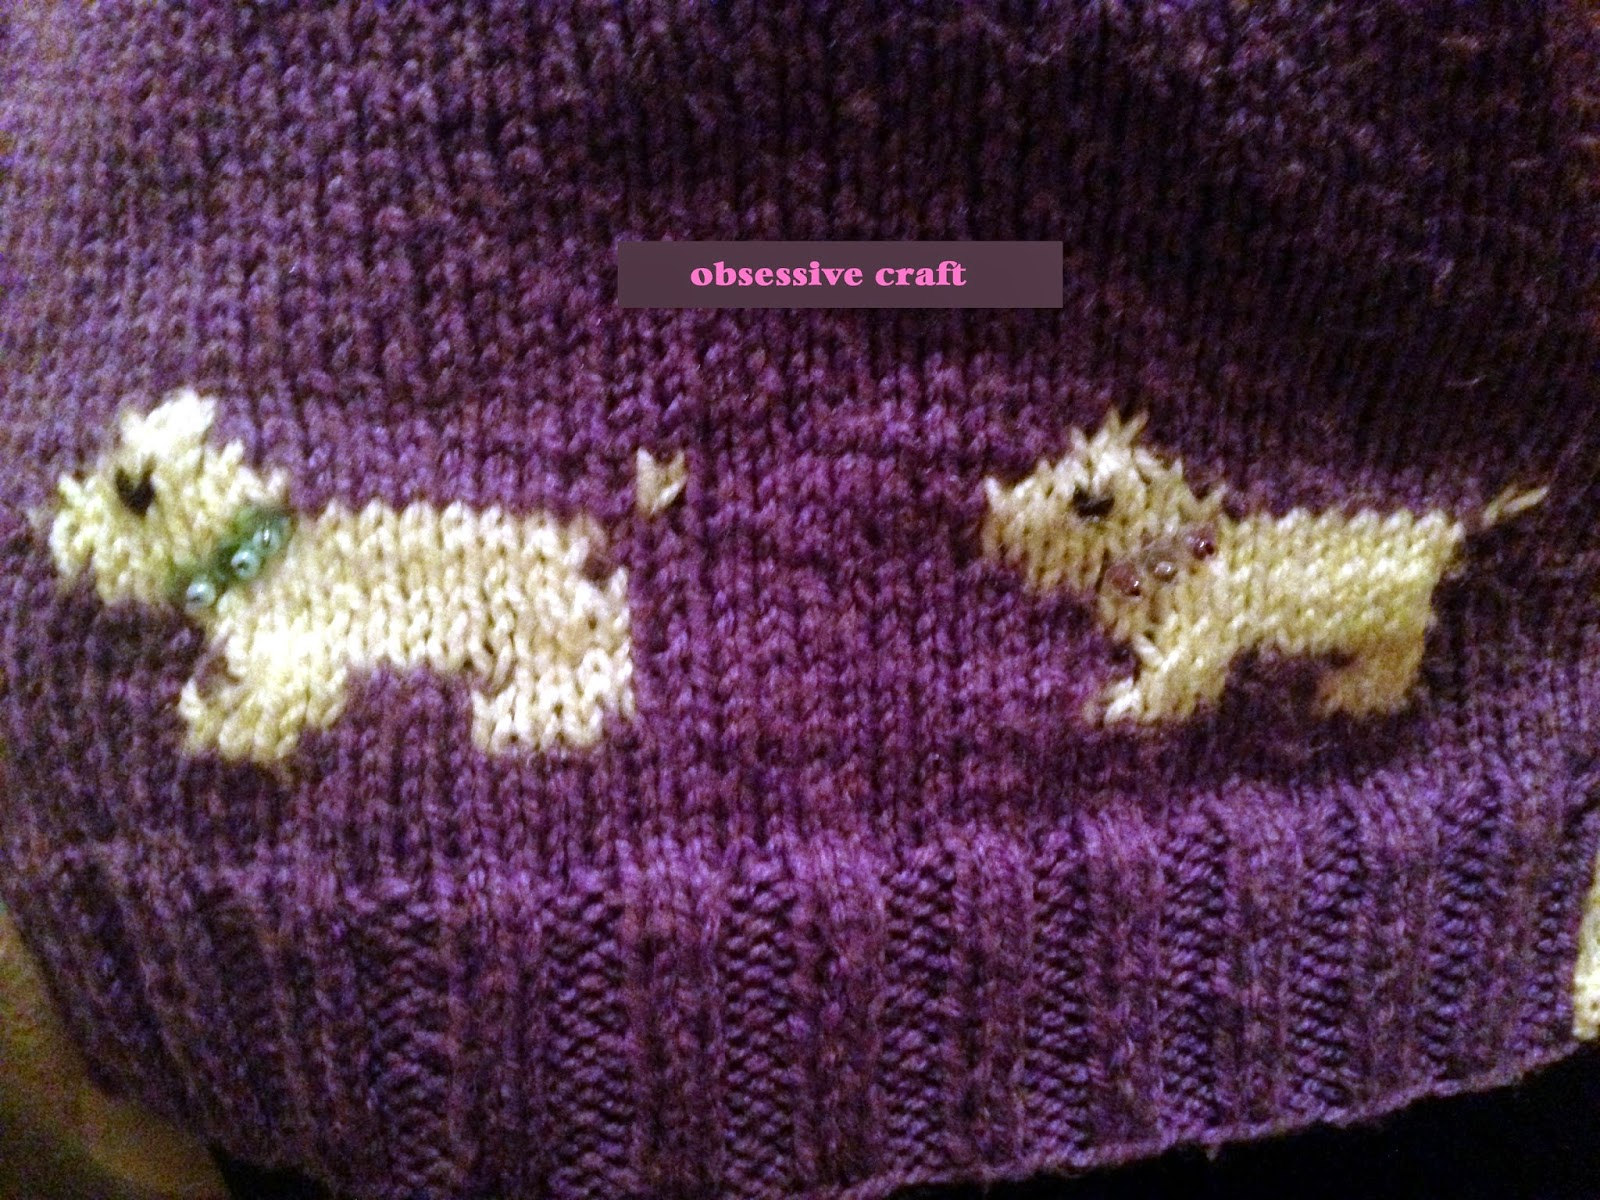 Dog Paw Knitting Pattern : Obsessive Craft: Knitted vest with dog and paw patterns ...